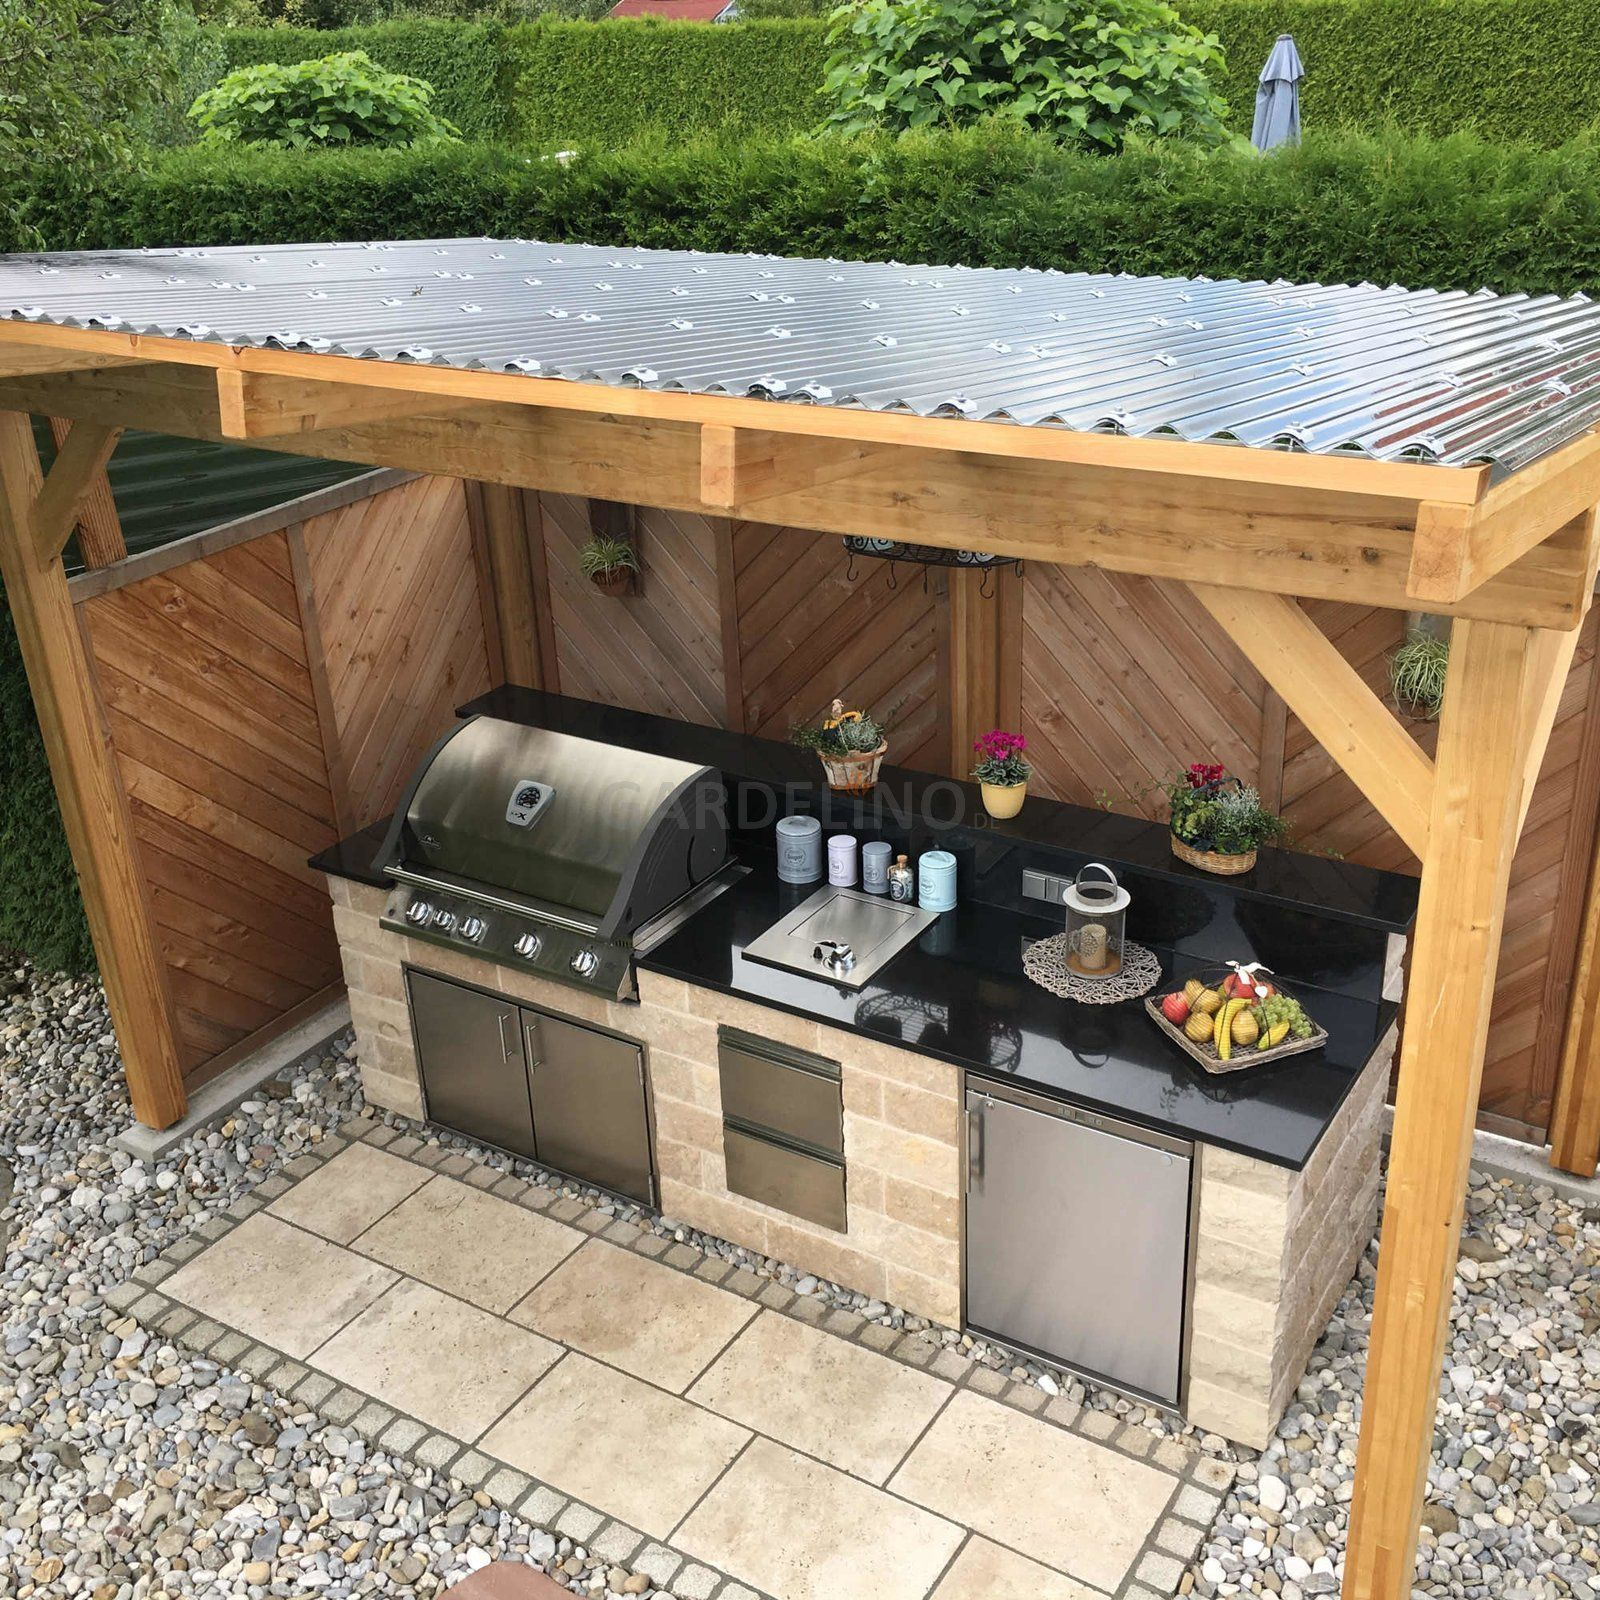 Best Amazing Outdoor Kitchen Ideas Design For Small Space On A